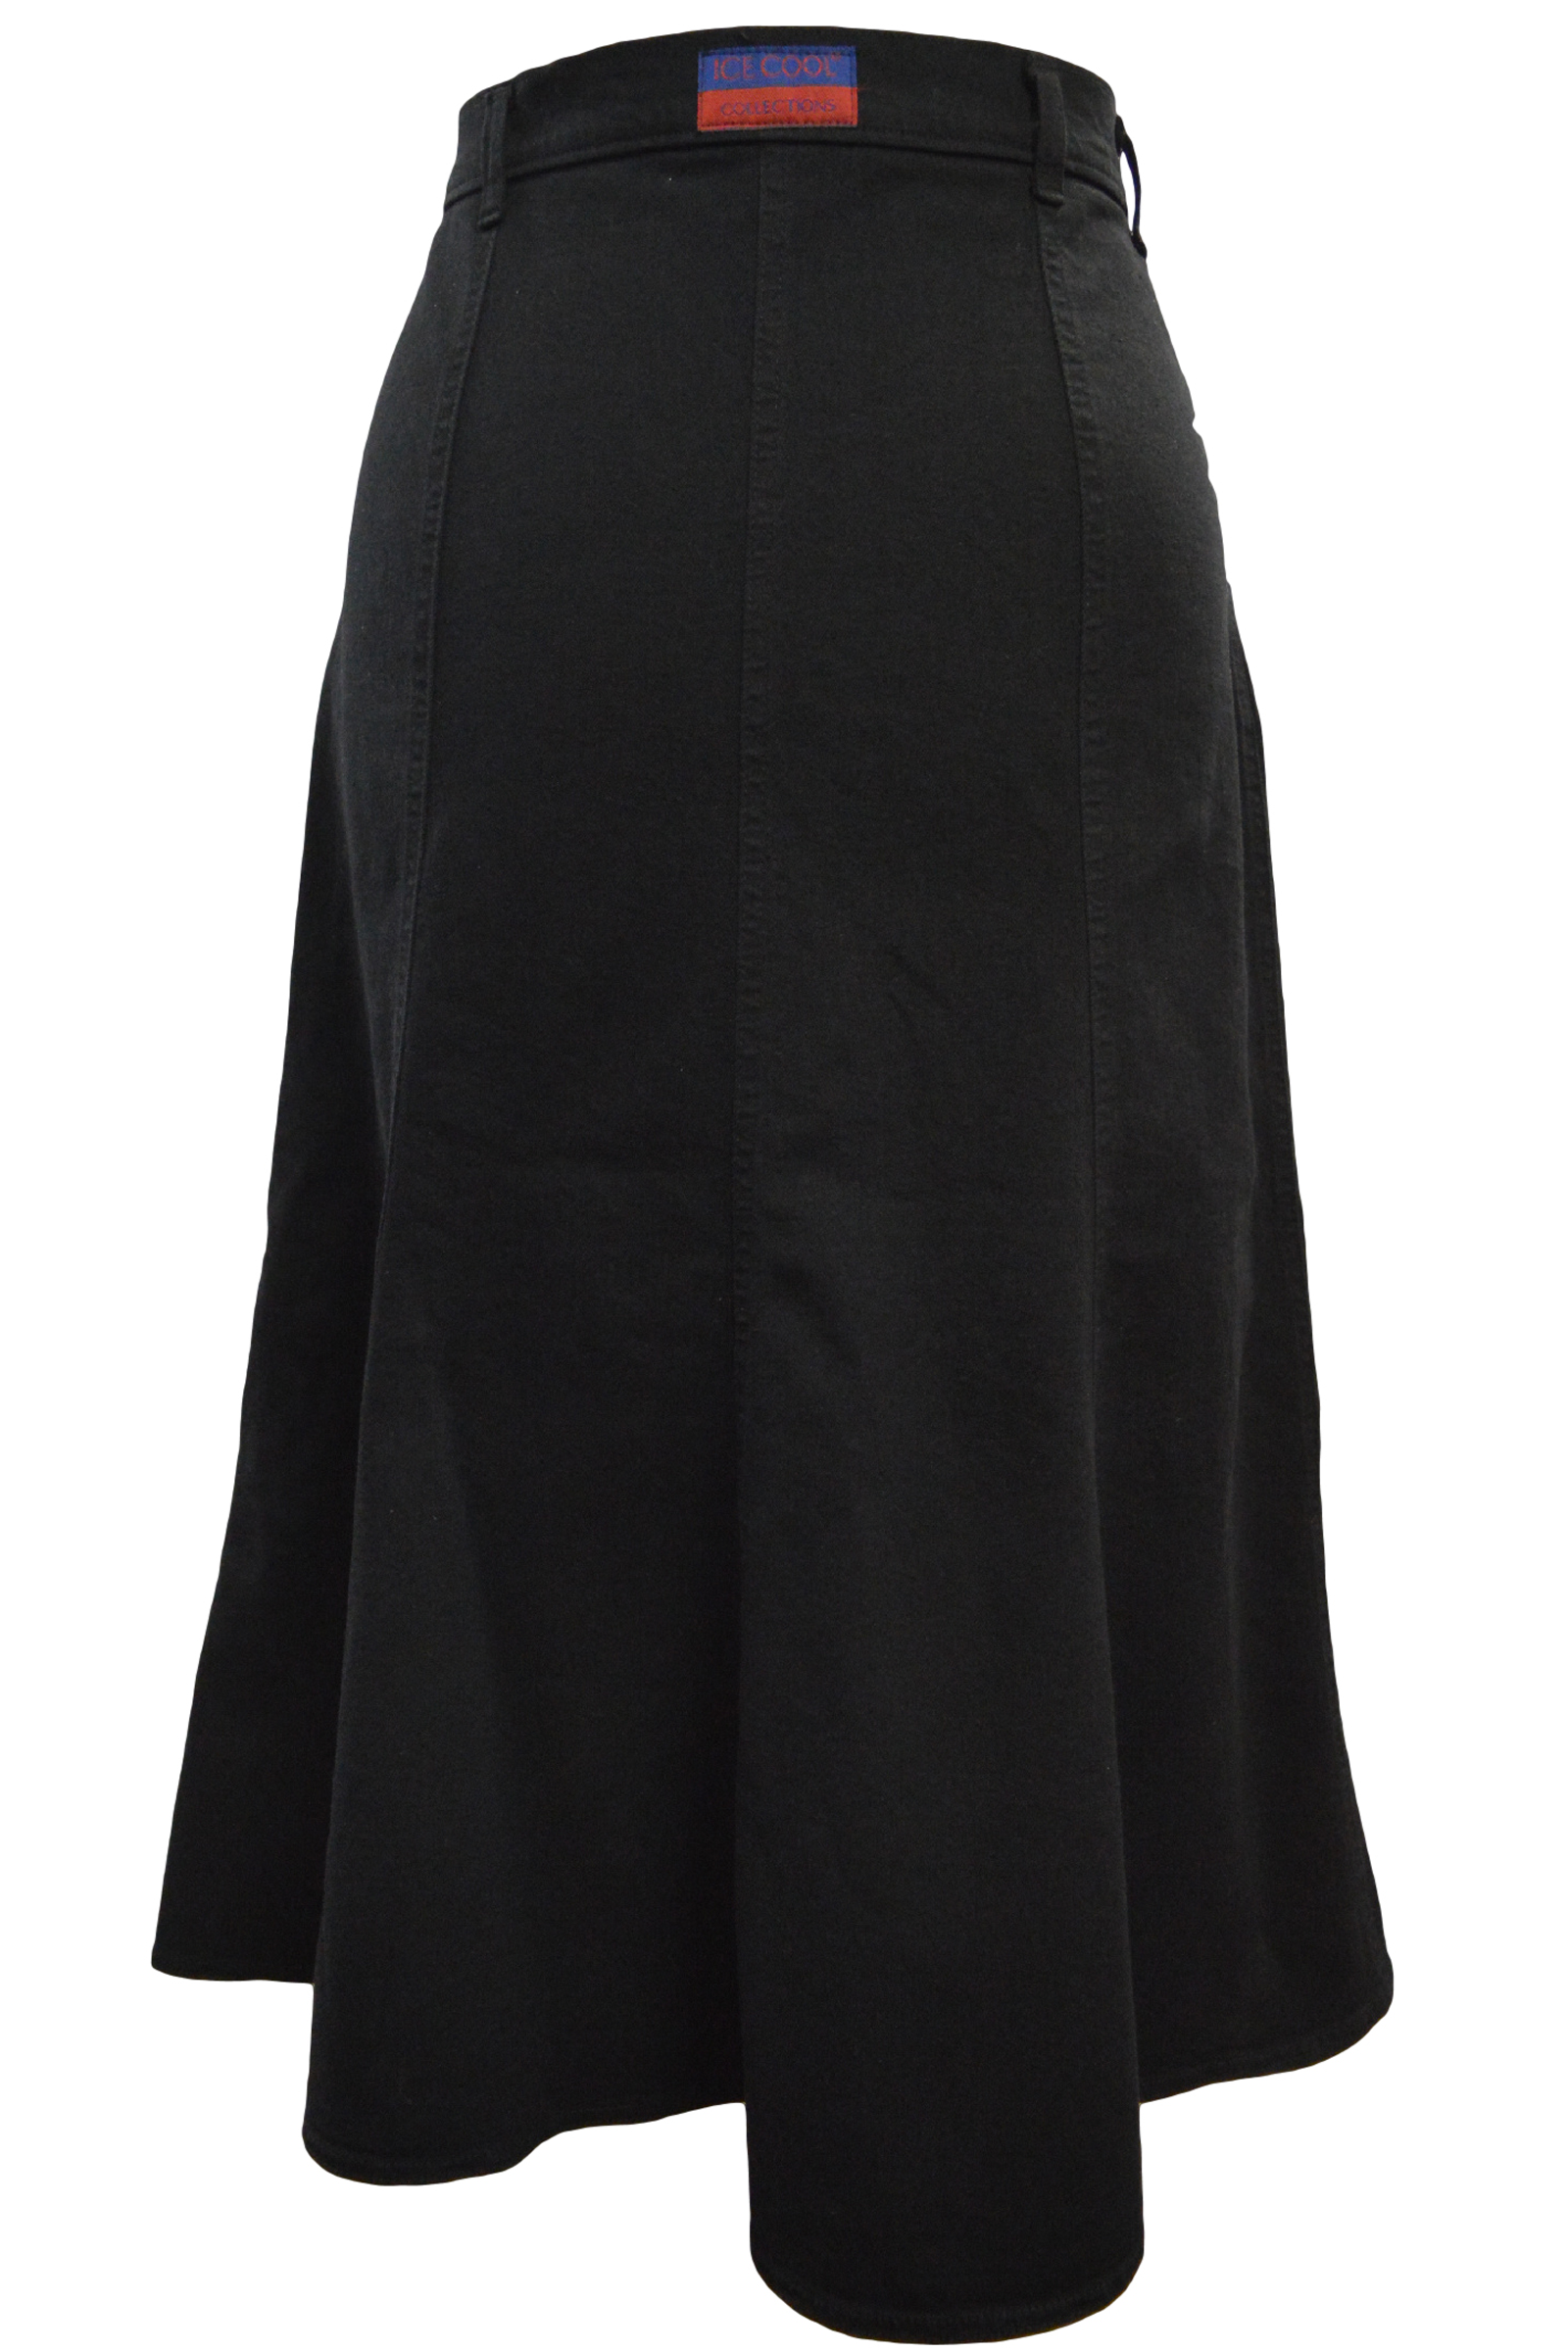 Women/Plus Long Flared Black Stretch Denim Skirt